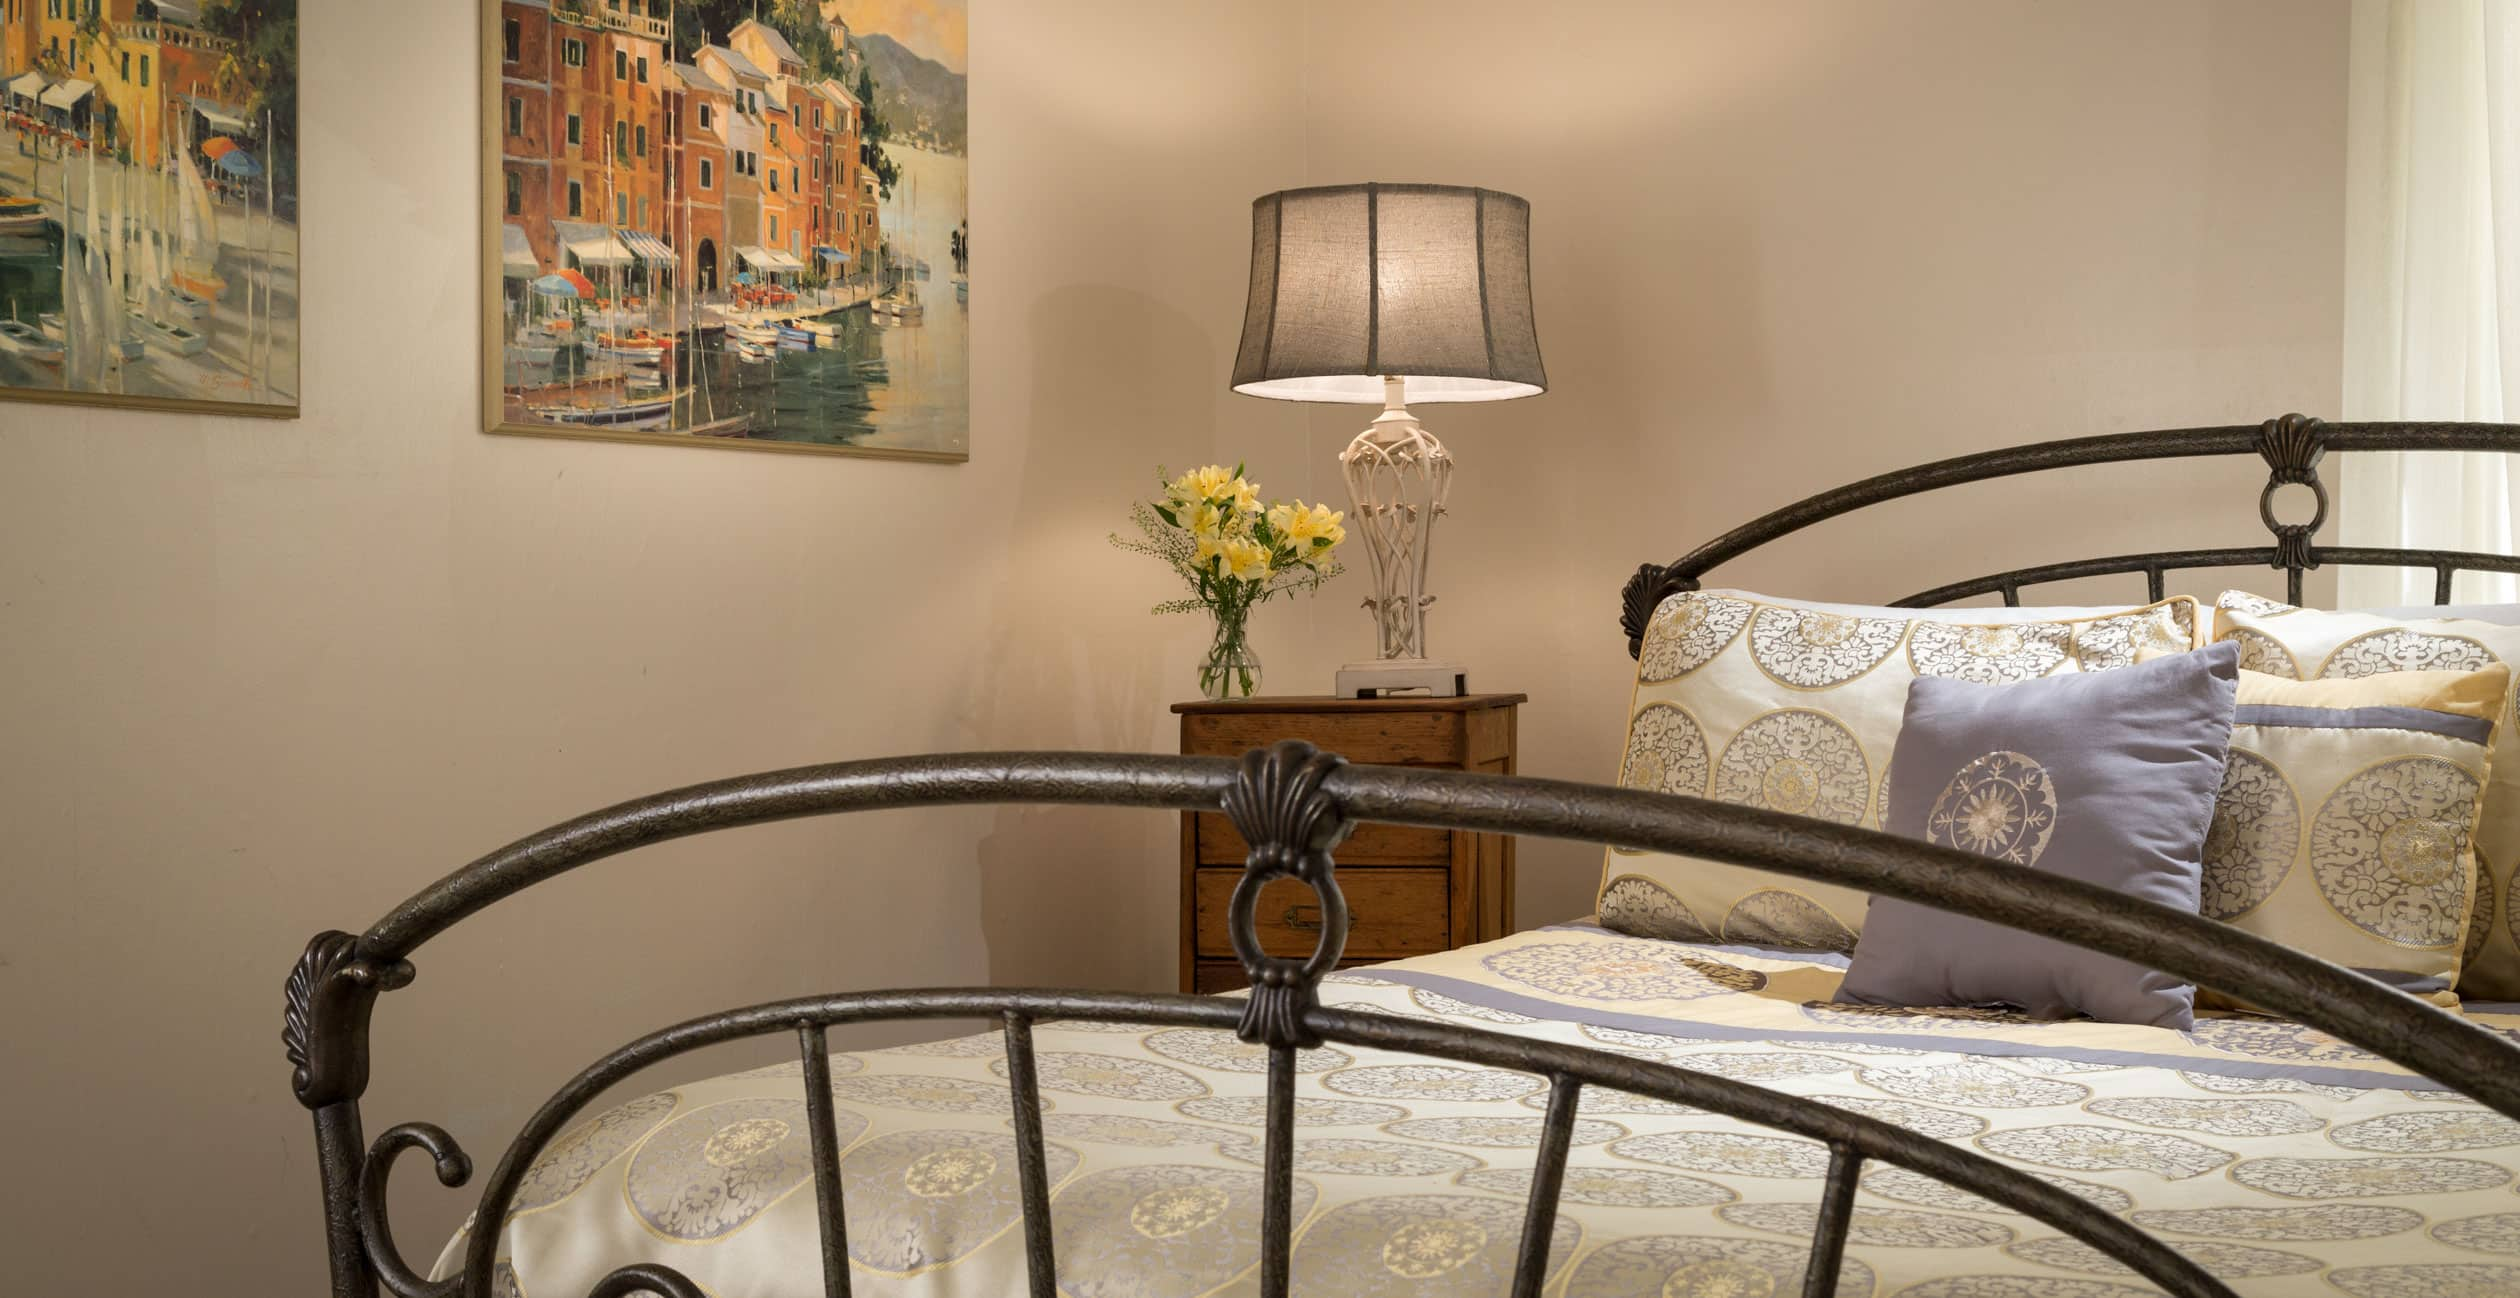 Queen bed with a lamp on an end table